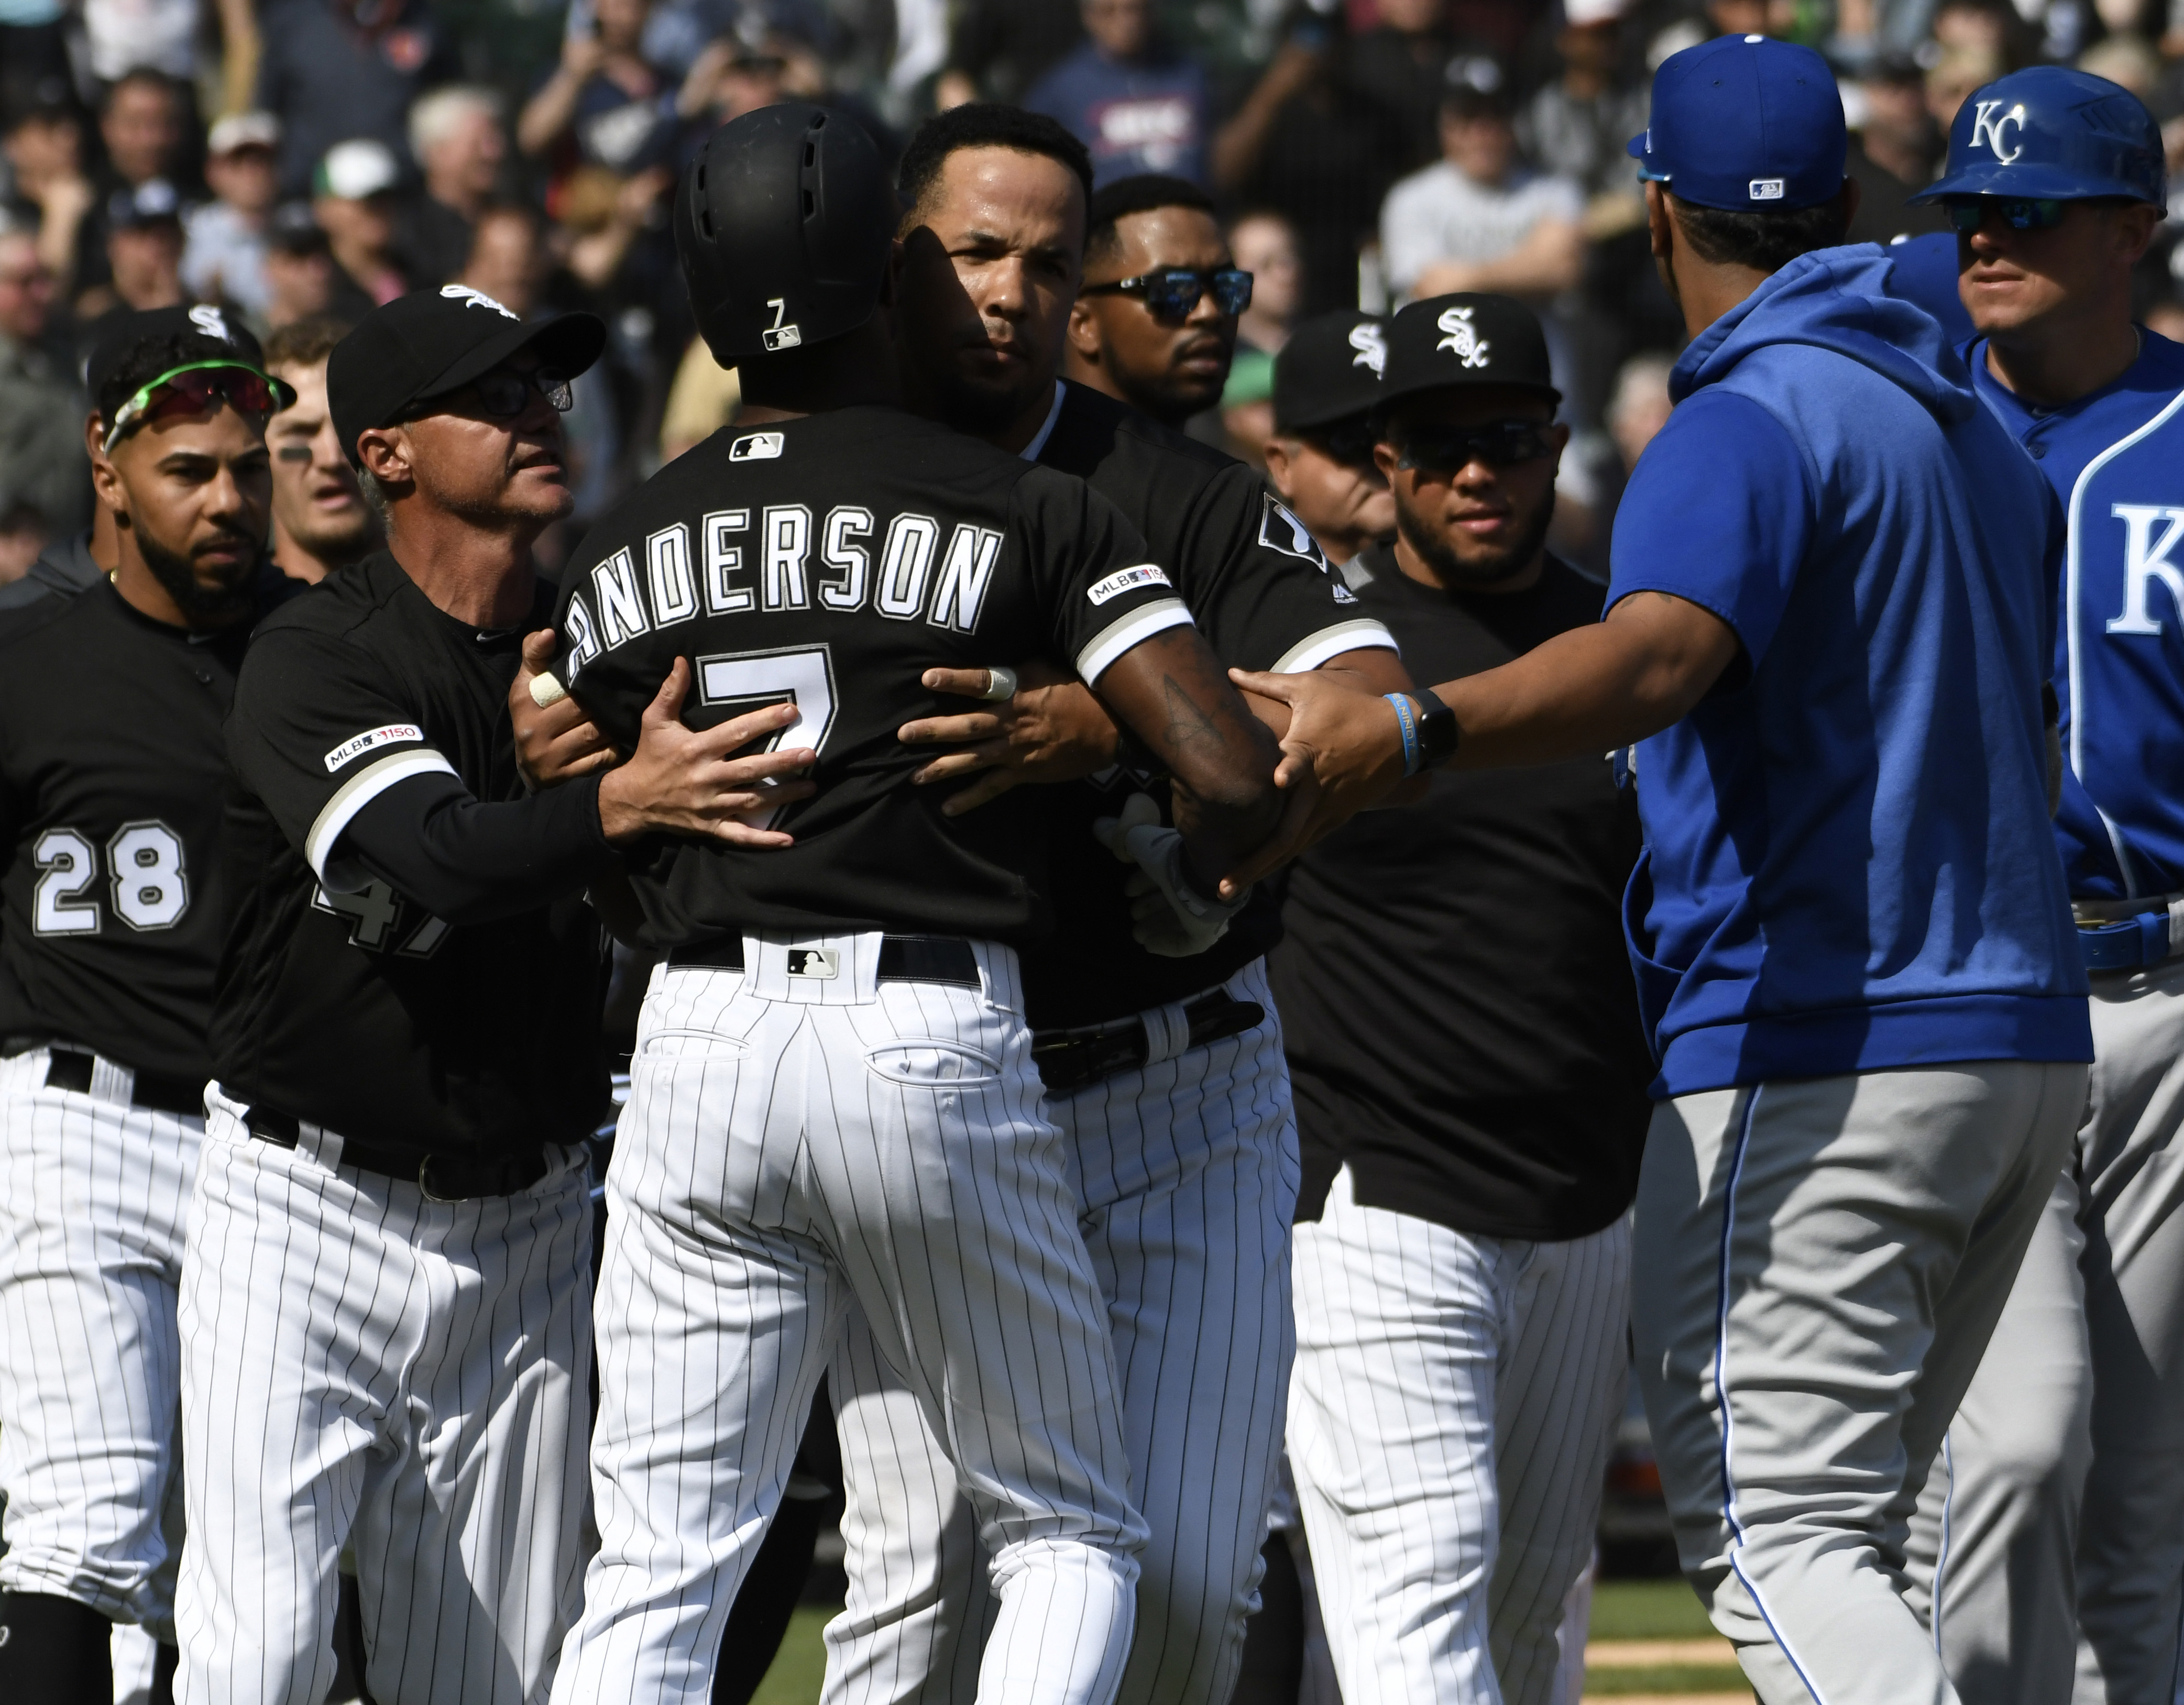 Tim Anderson pimps home run, then gets drilled by pitcher to spark benches-clearing altercation (Video)